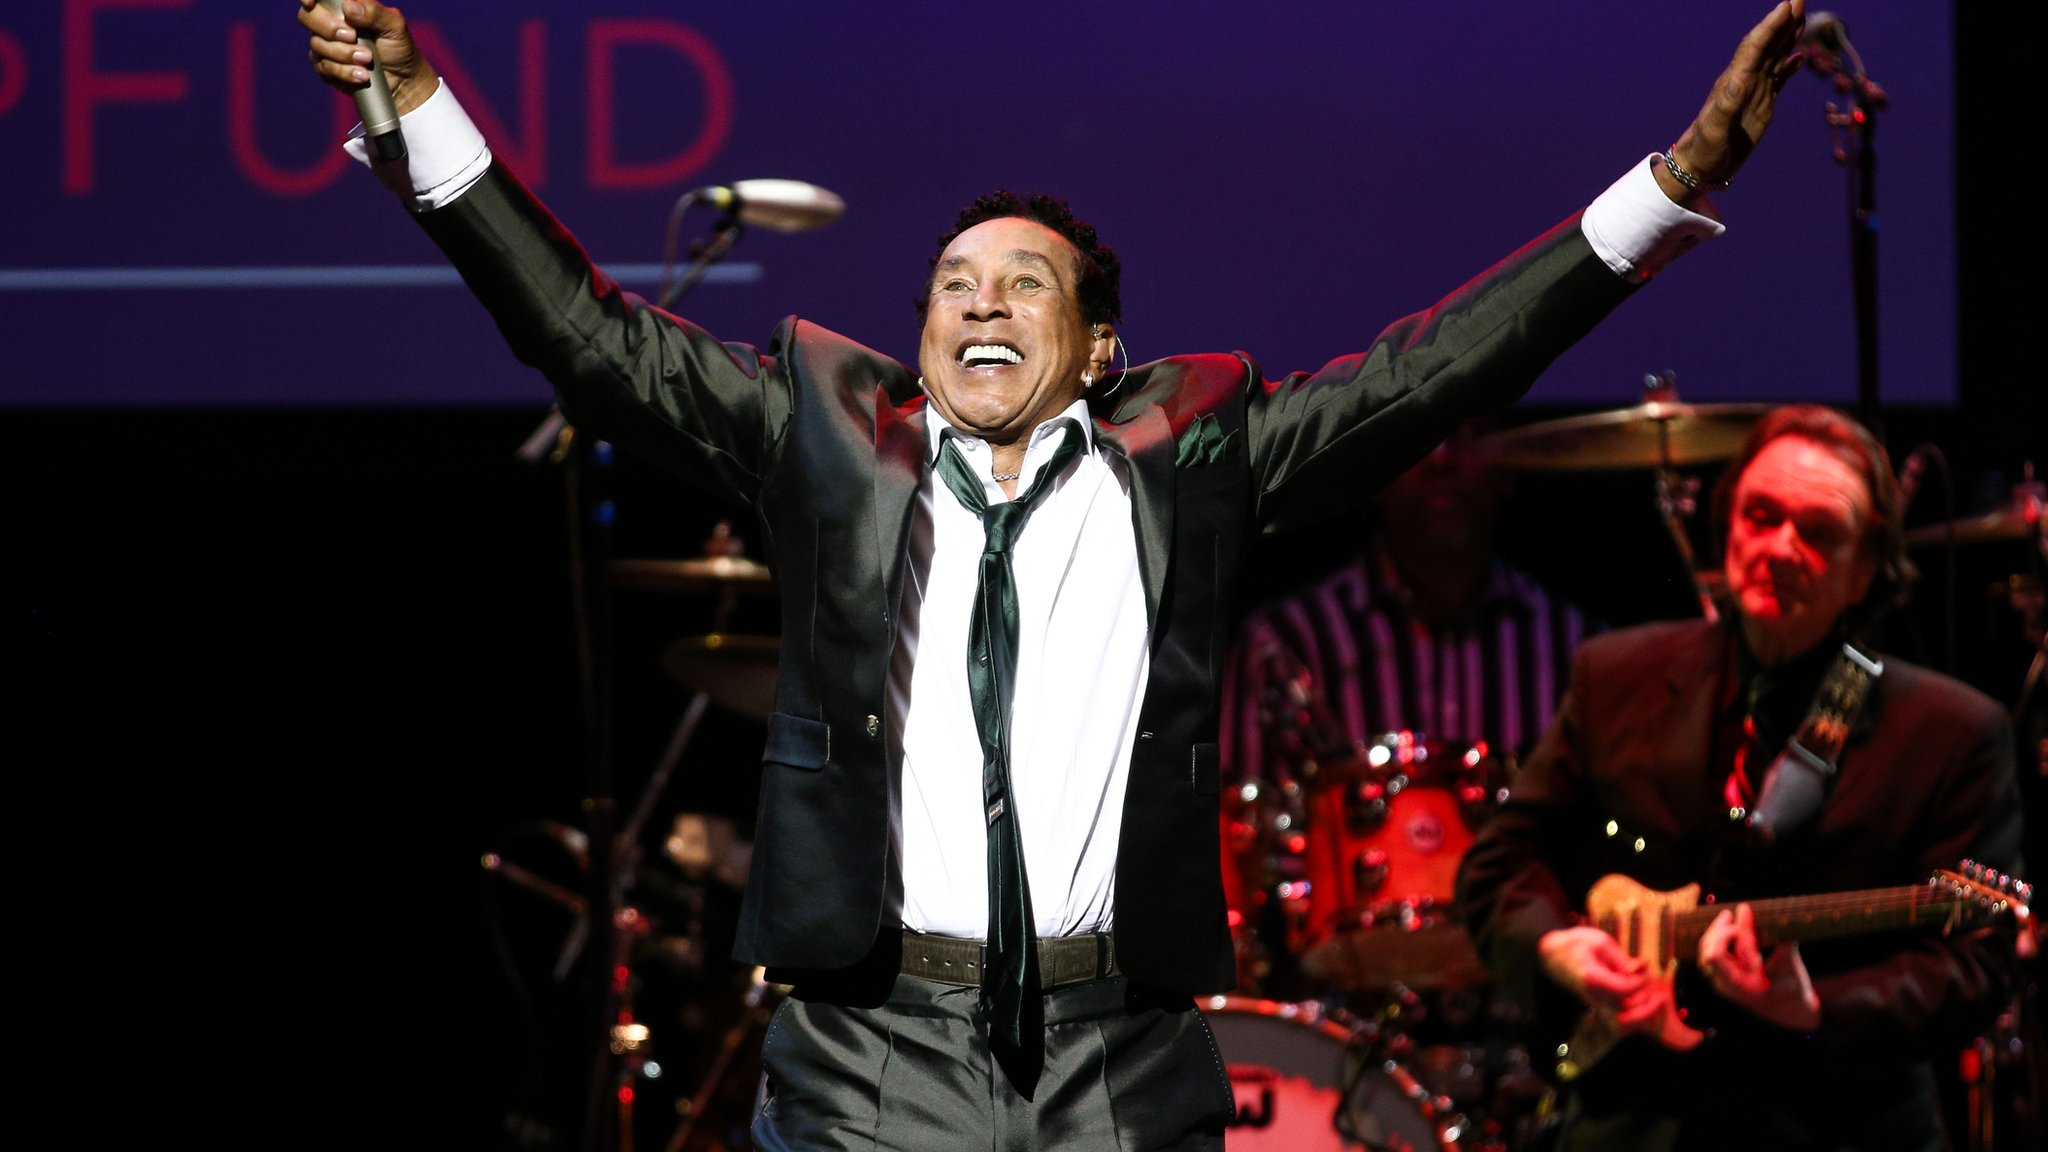 BBC News - Smokey Robinson to receive Gershwin music honour